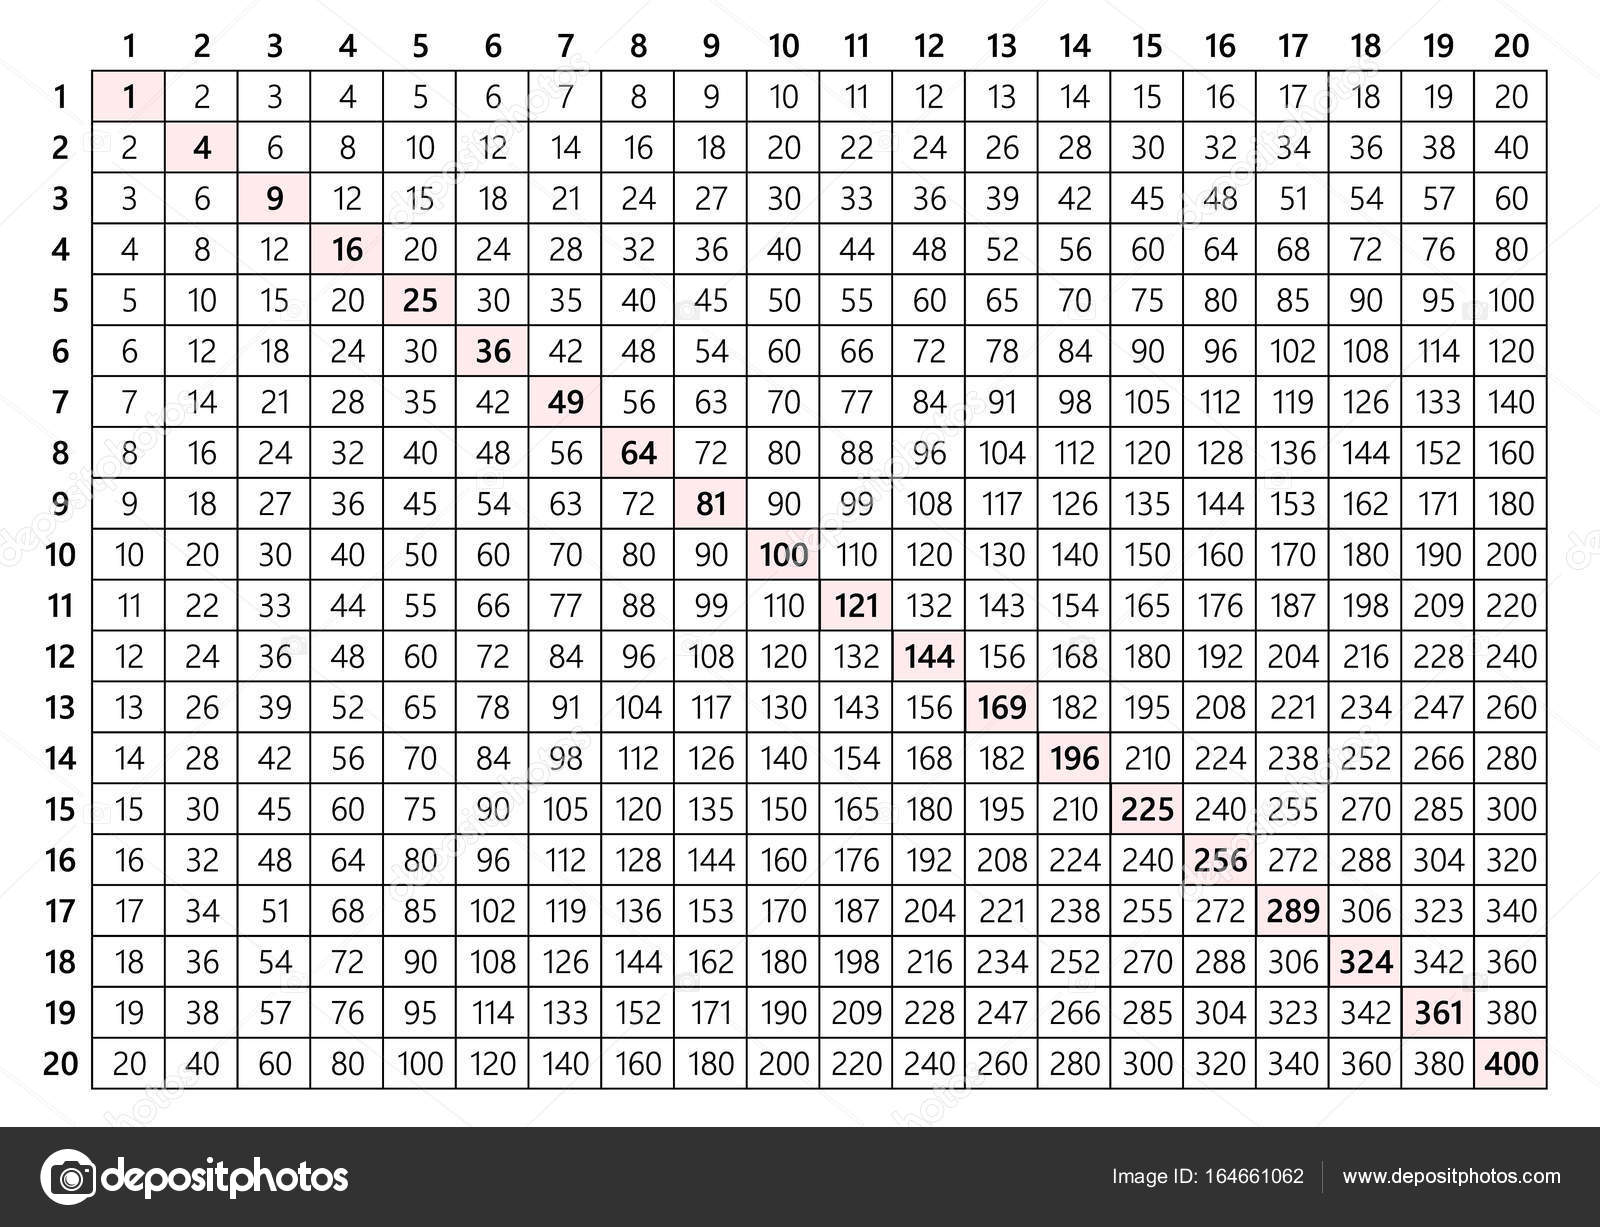 Times table 20x20 images galleries - La table de multiplication de 3 ...